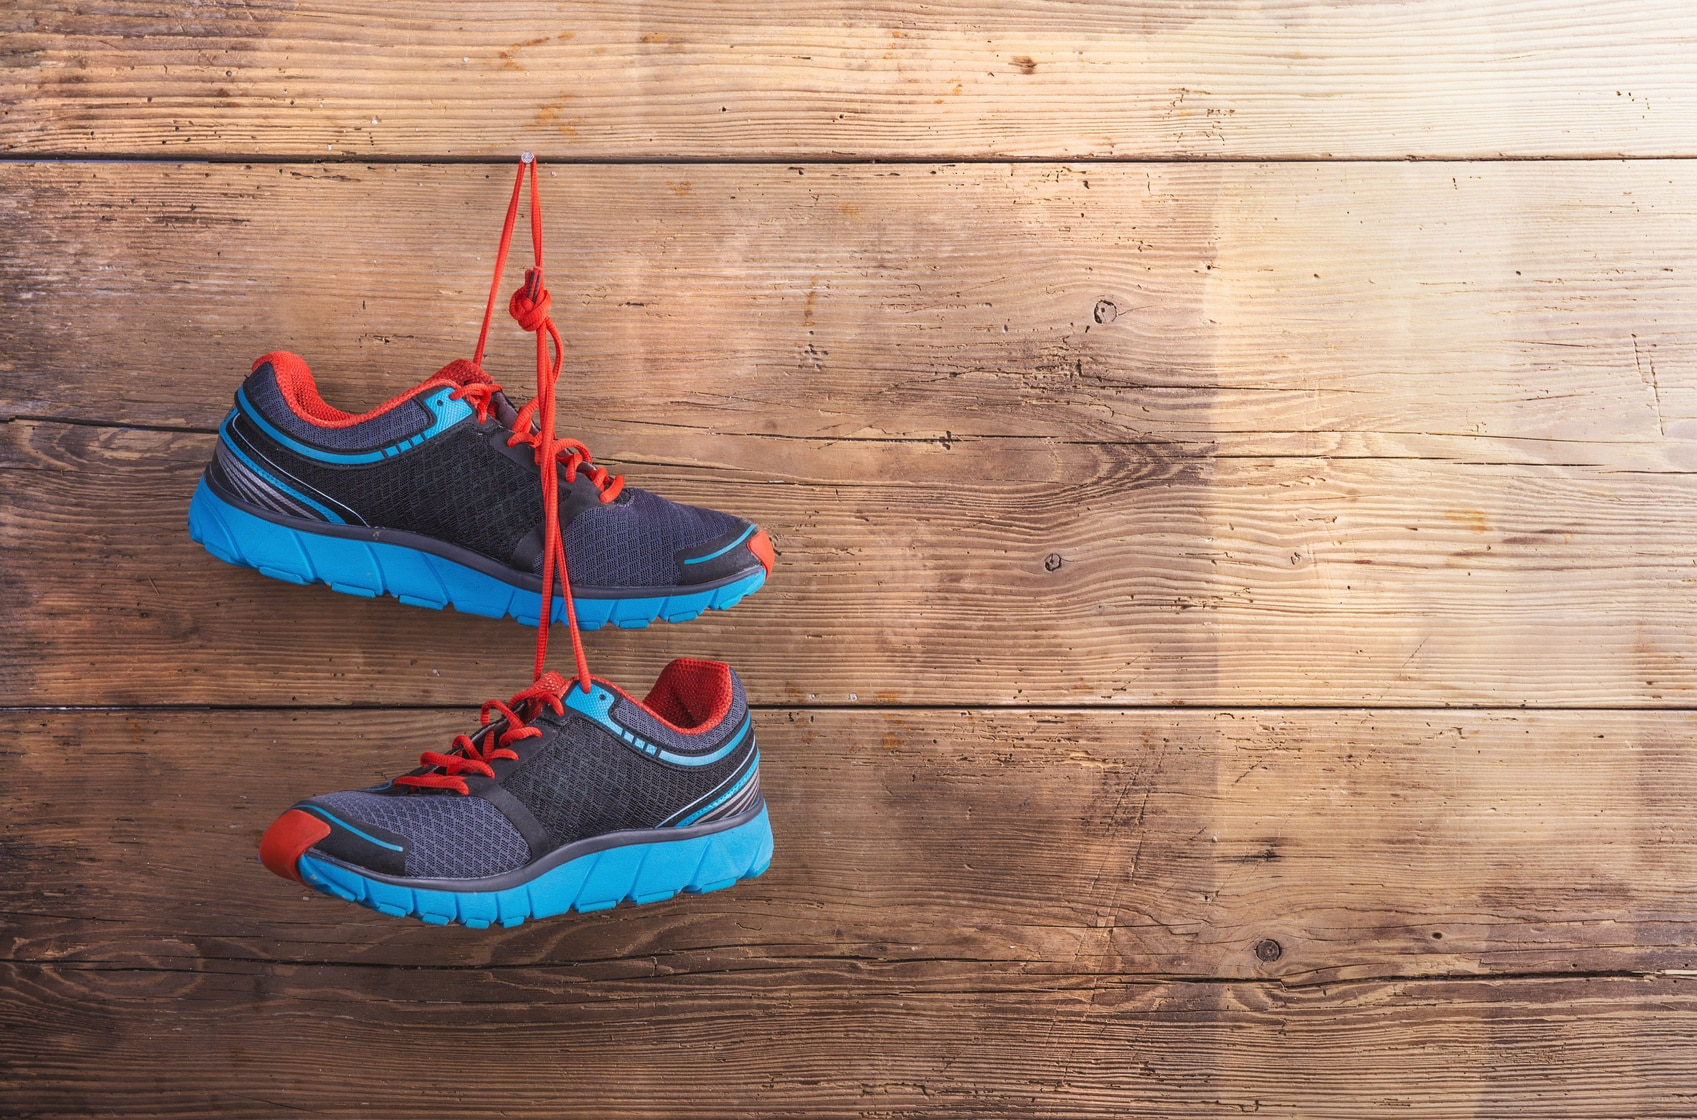 Running 101 - The 5 Main Running Shoes Types (& How to